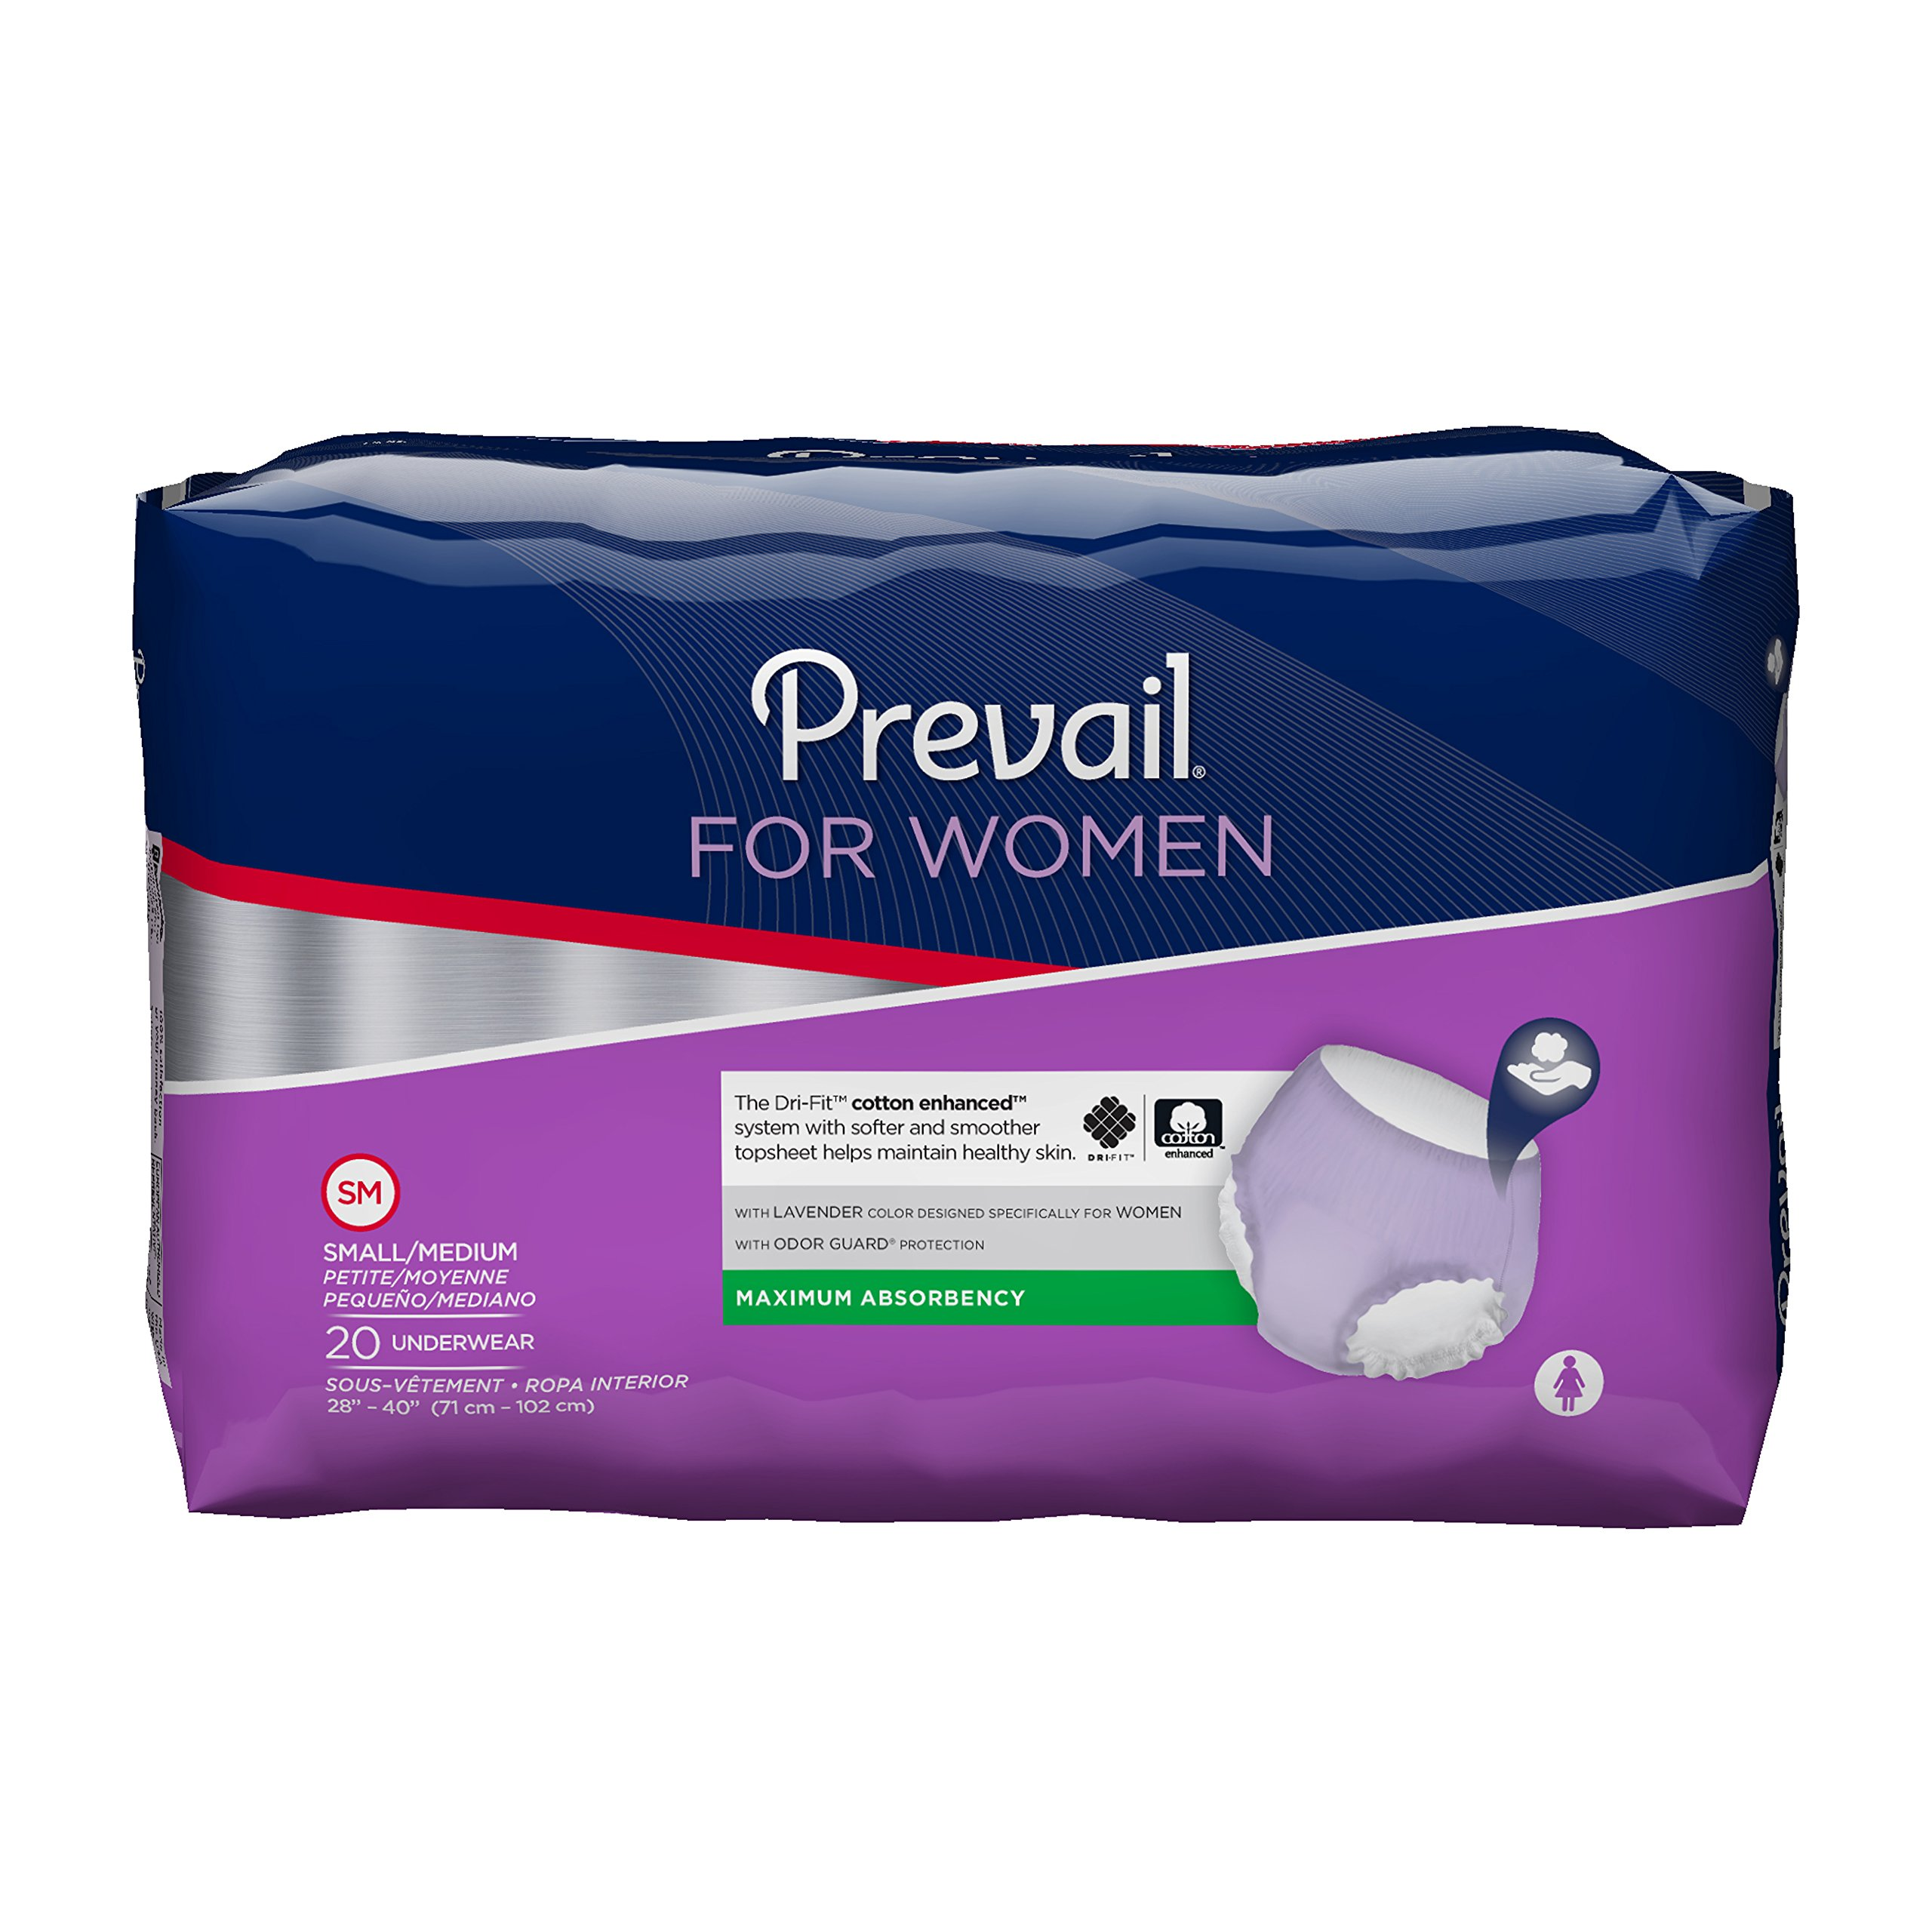 Prevail Maximum Absorbency Incontinence Underwear for Women, Small/Medium, 20-Count